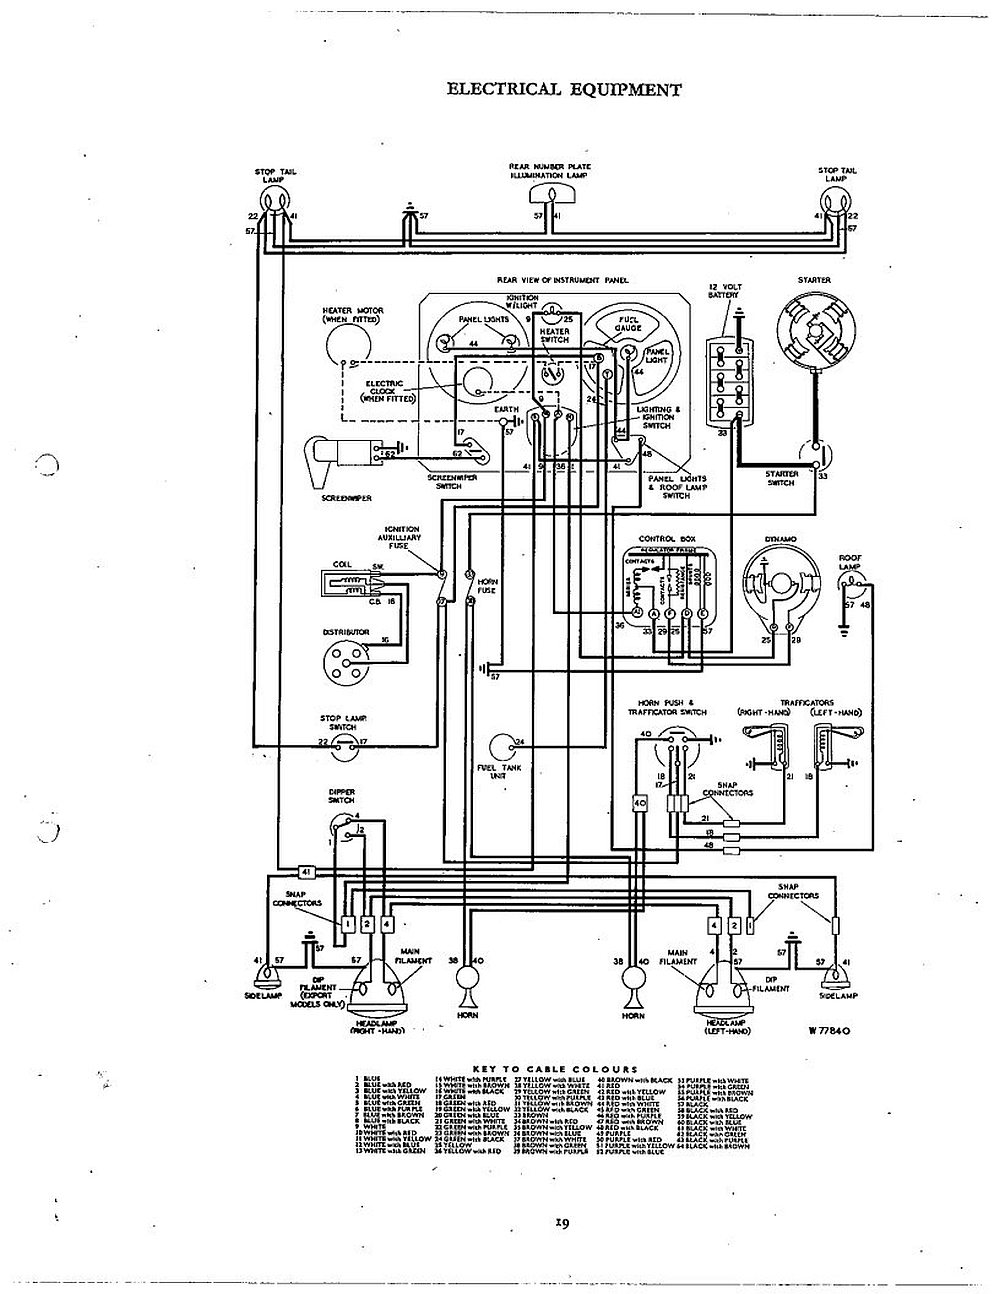 medium resolution of 1980 triumph tr7 wiring diagram wiring diagram centre wiring diagram for triumph tr7 1976